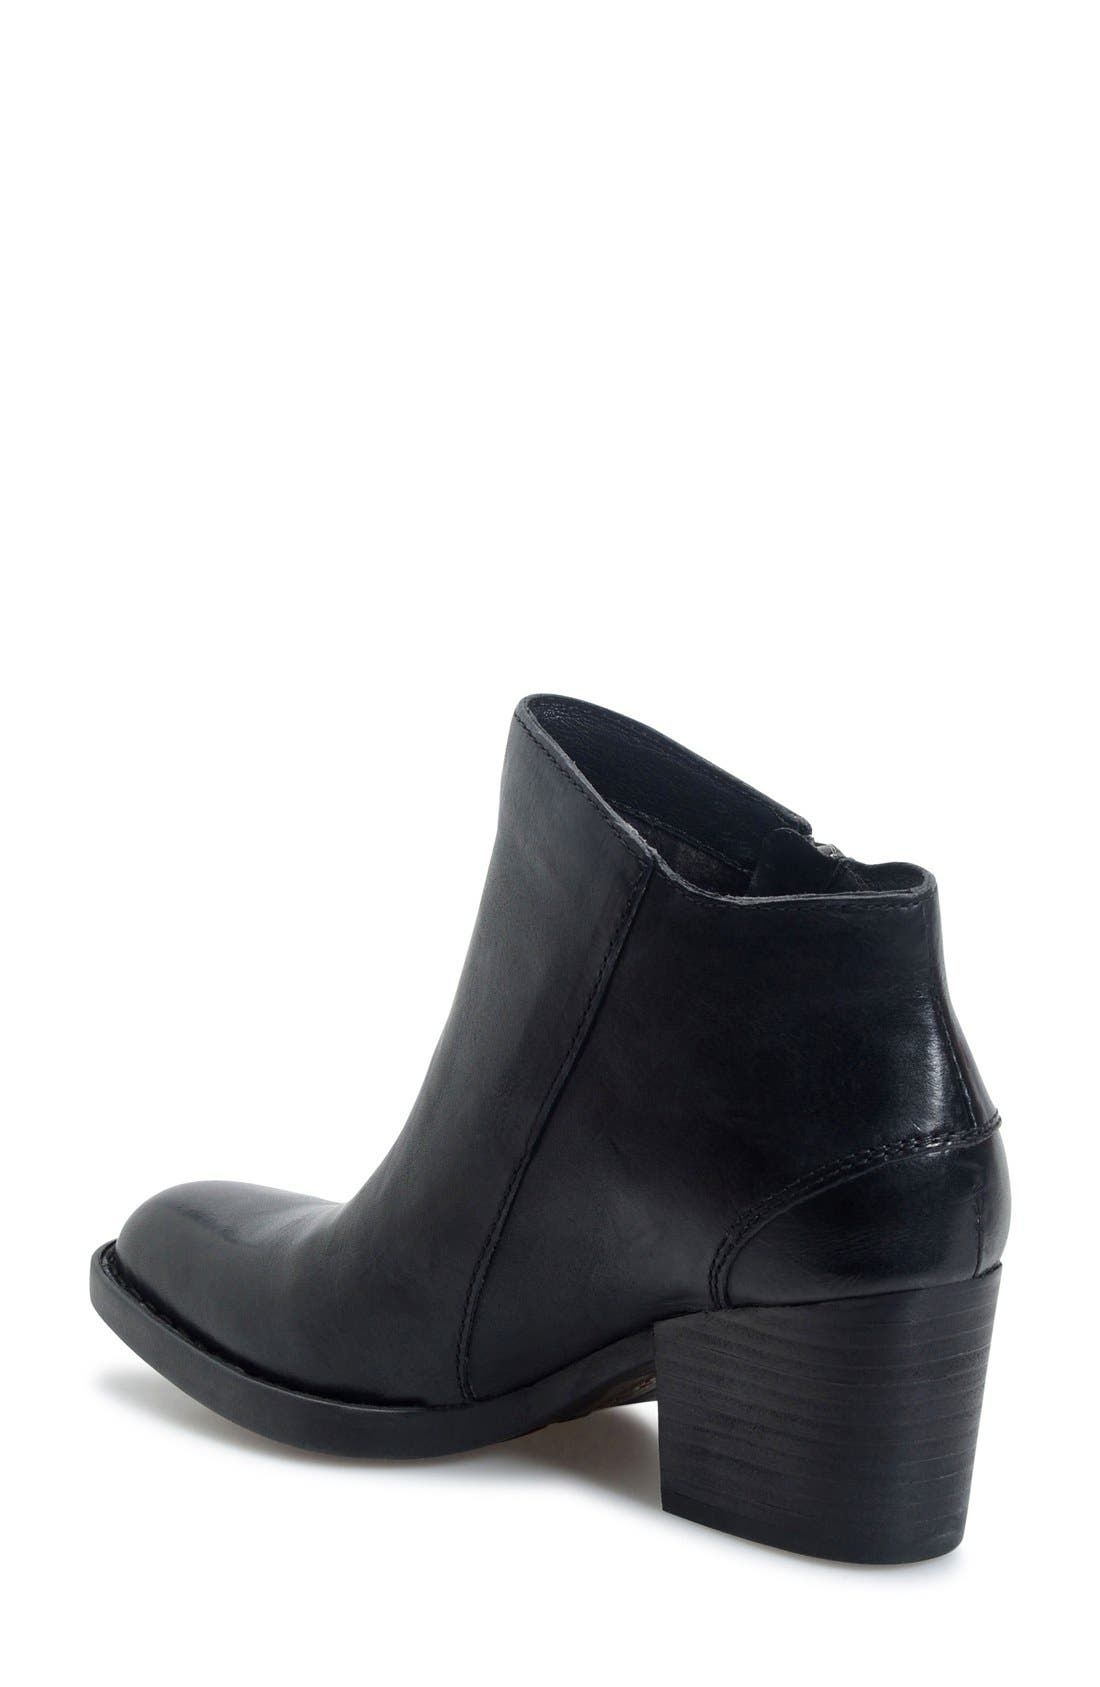 Alternate Image 2  - Børn 'Rowell' Block Heel Bootie (Women)